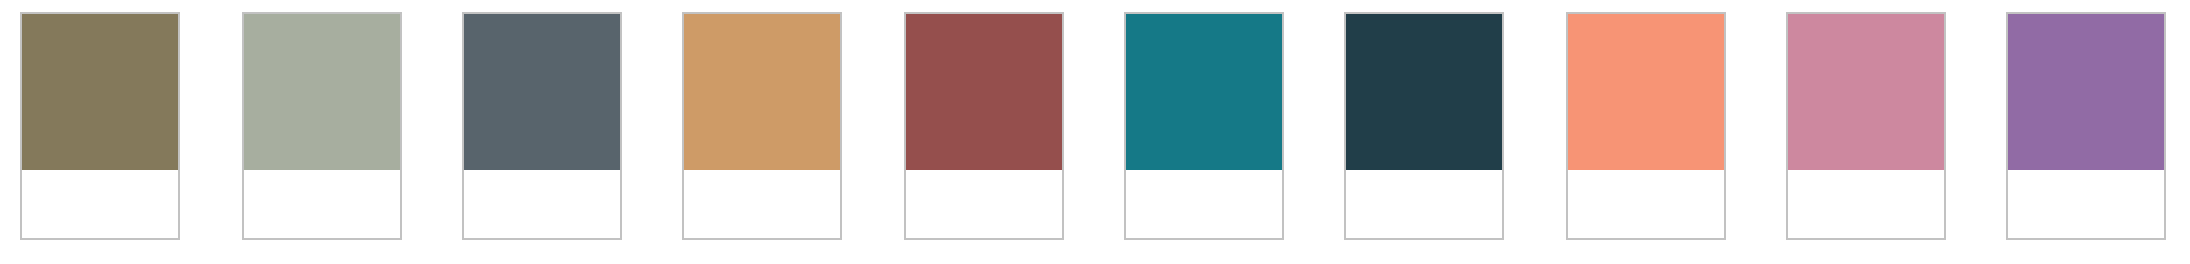 Pantone color palette F/W 2015-10-15 at 2.14.50 PM